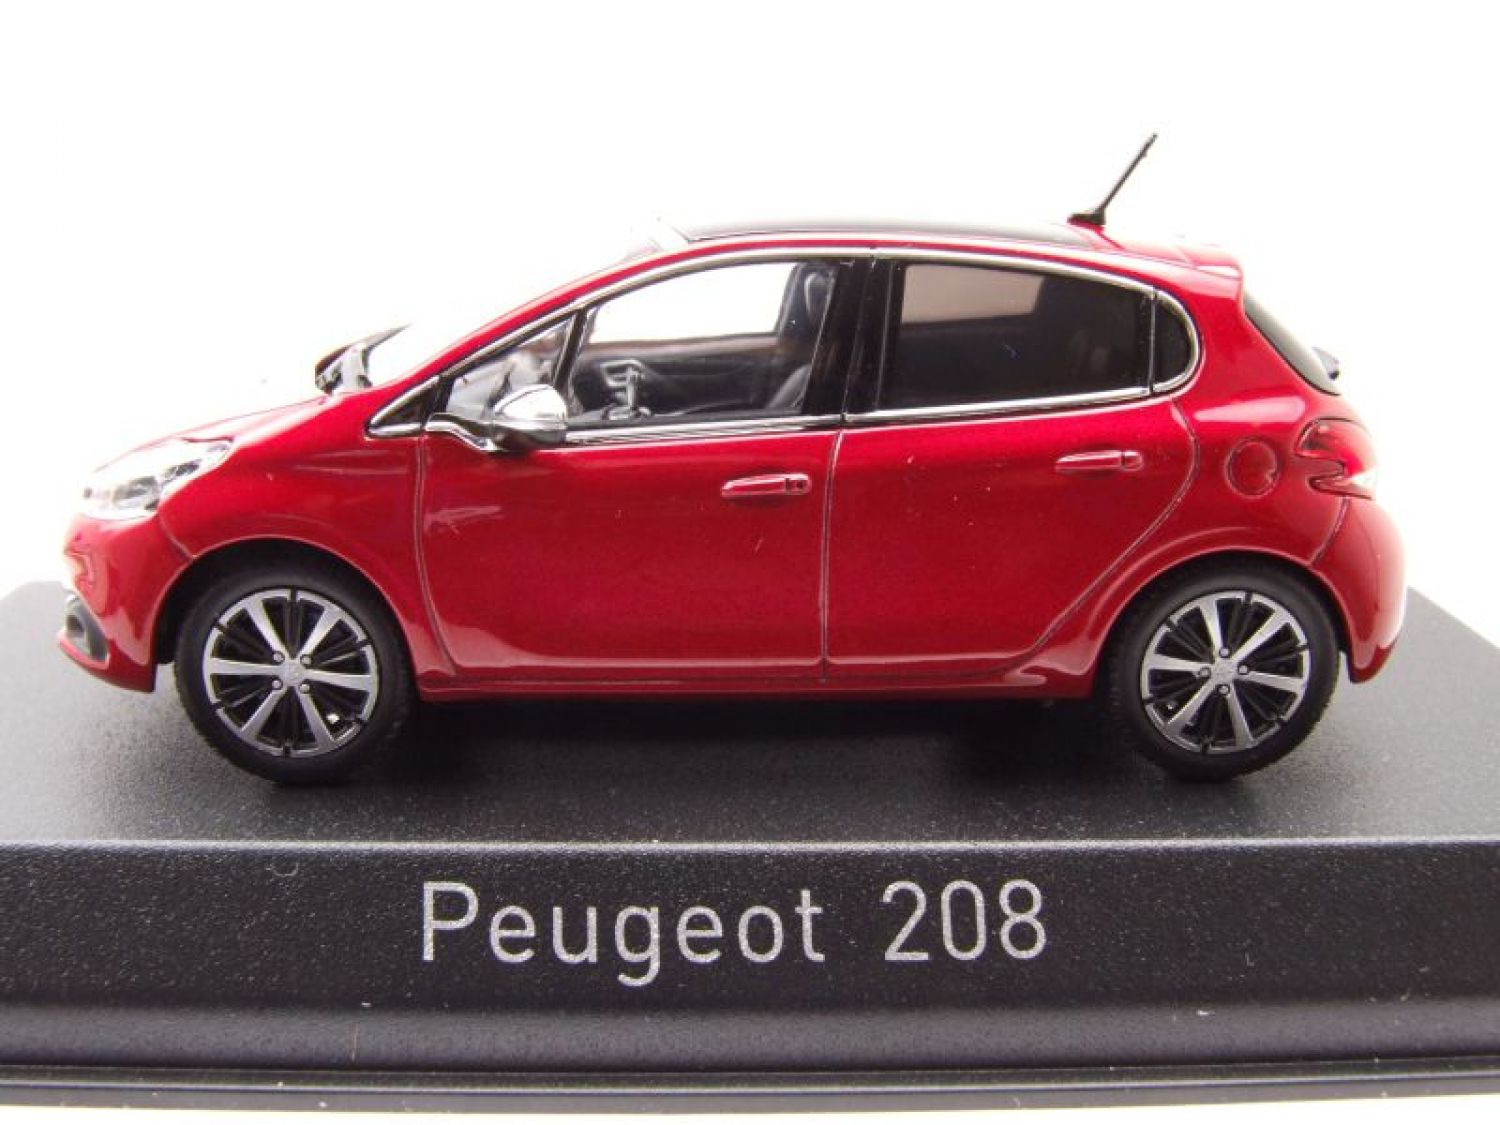 peugeot 208 2015 rouge m tallique mod le de voiture 1 43 norev ebay. Black Bedroom Furniture Sets. Home Design Ideas